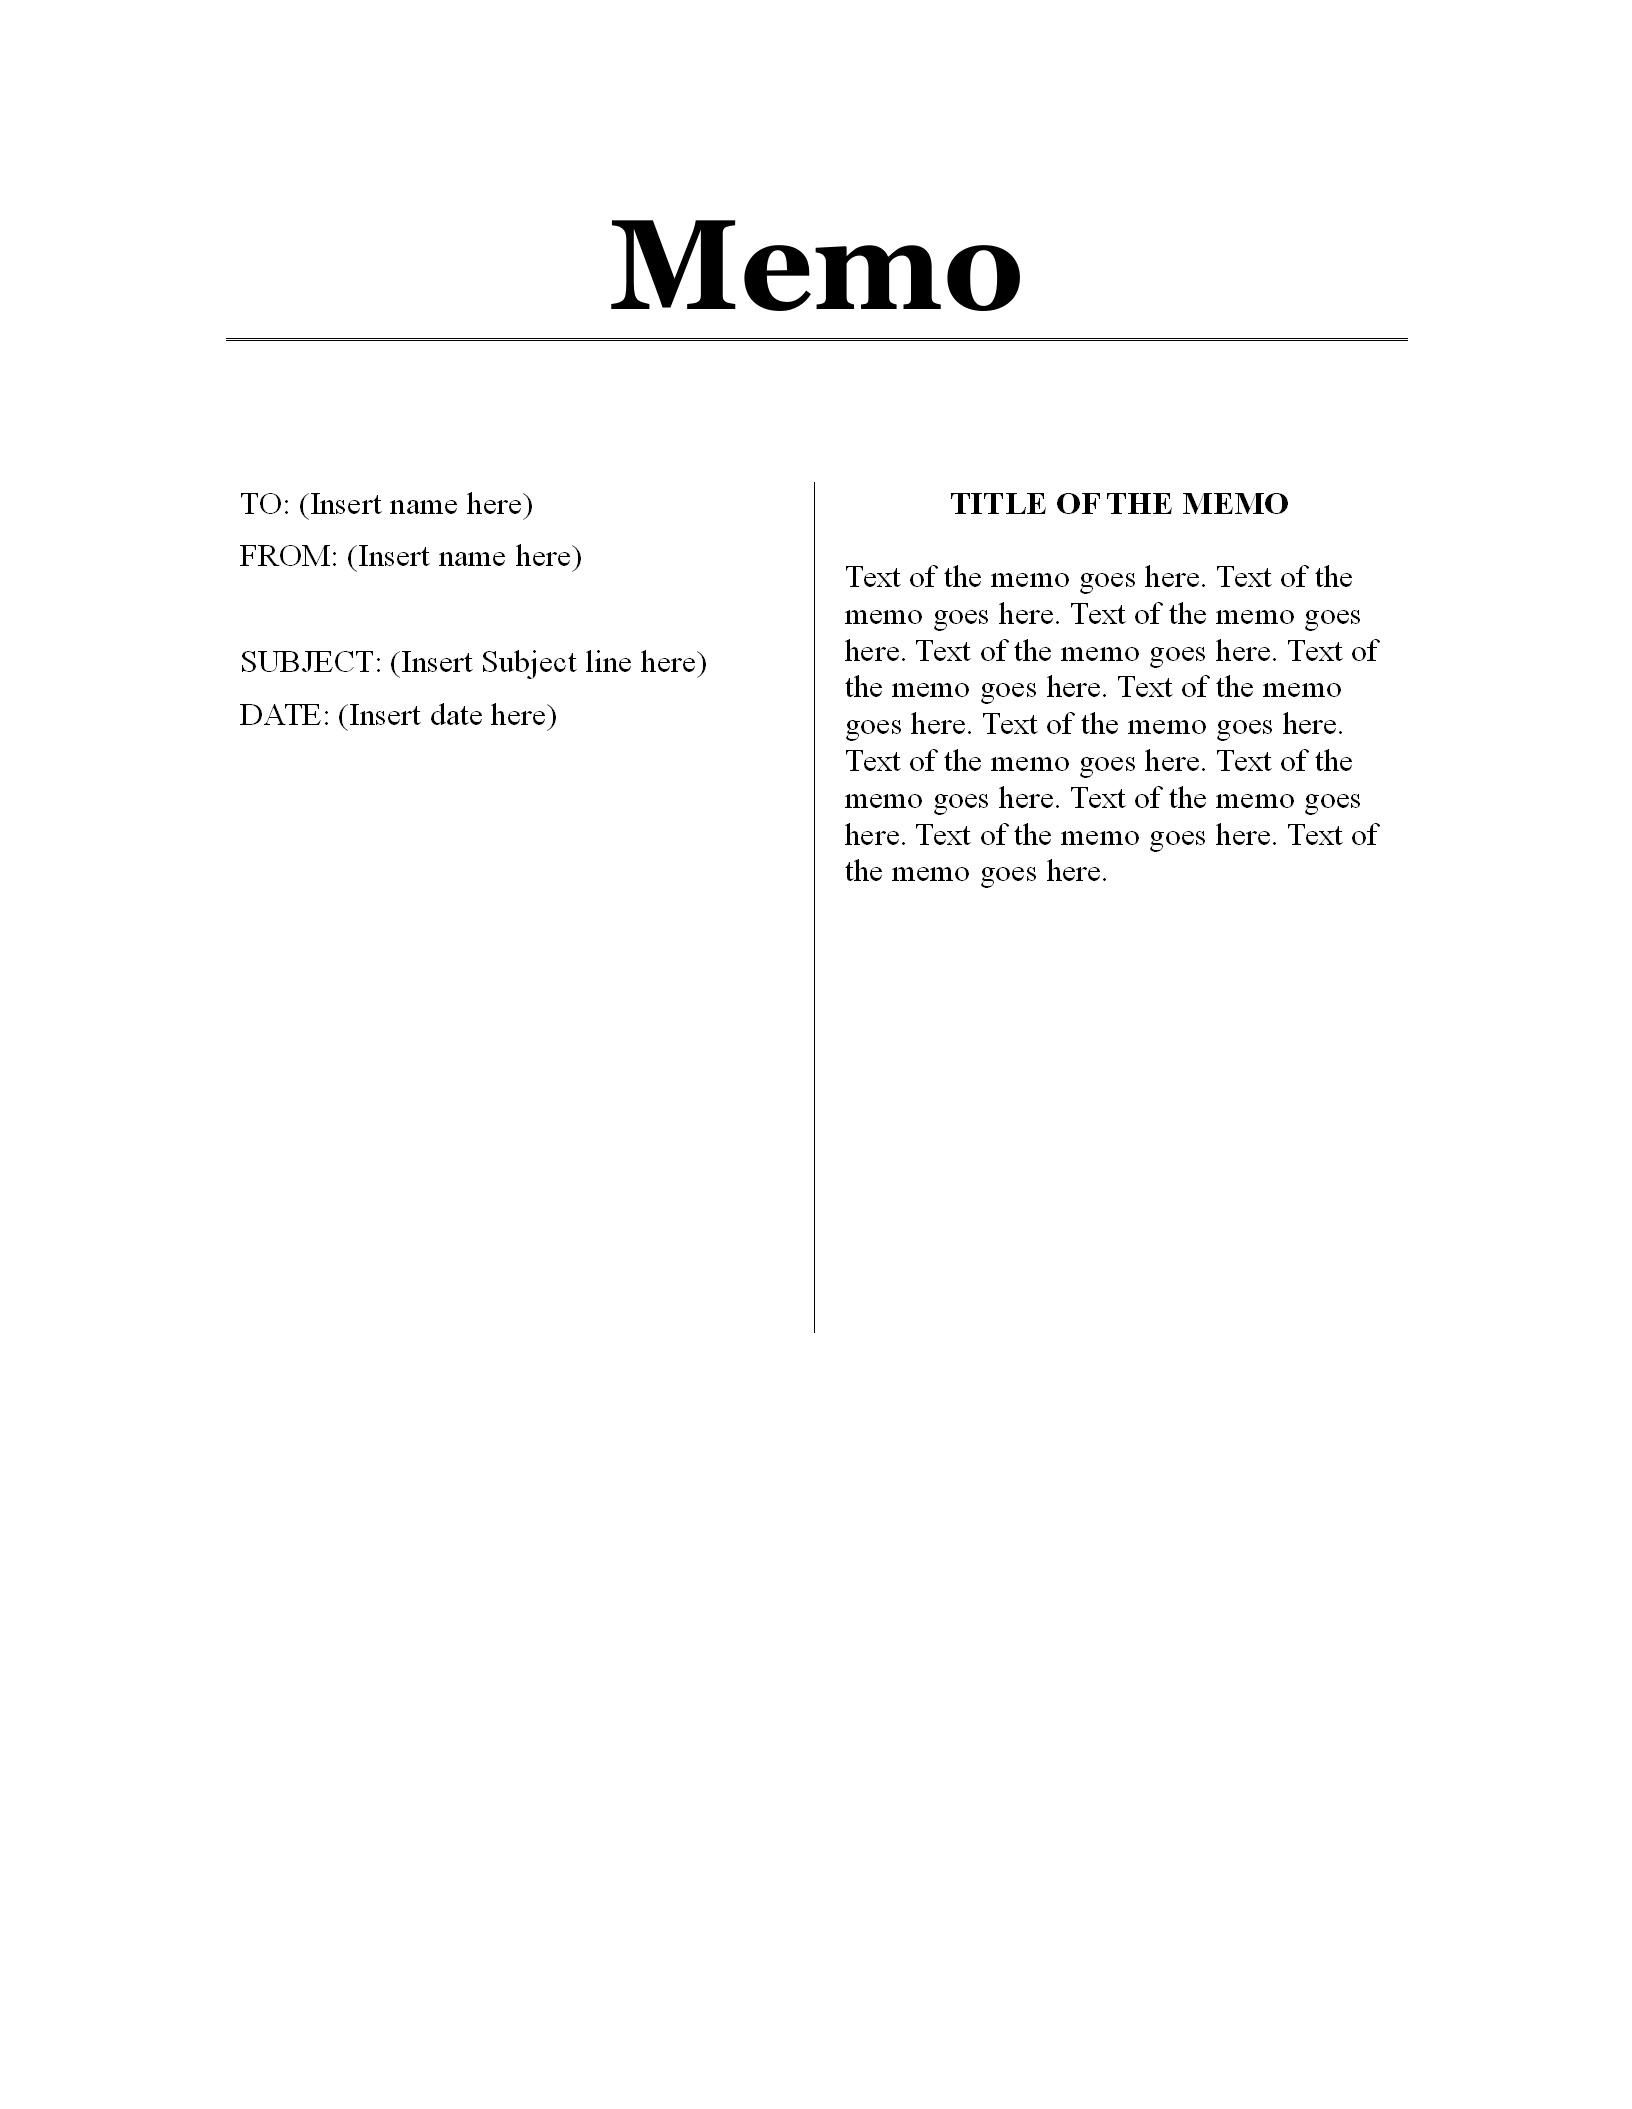 001 Simple Memo Template For Word High Resolution  Free Cash Sample 2013Full